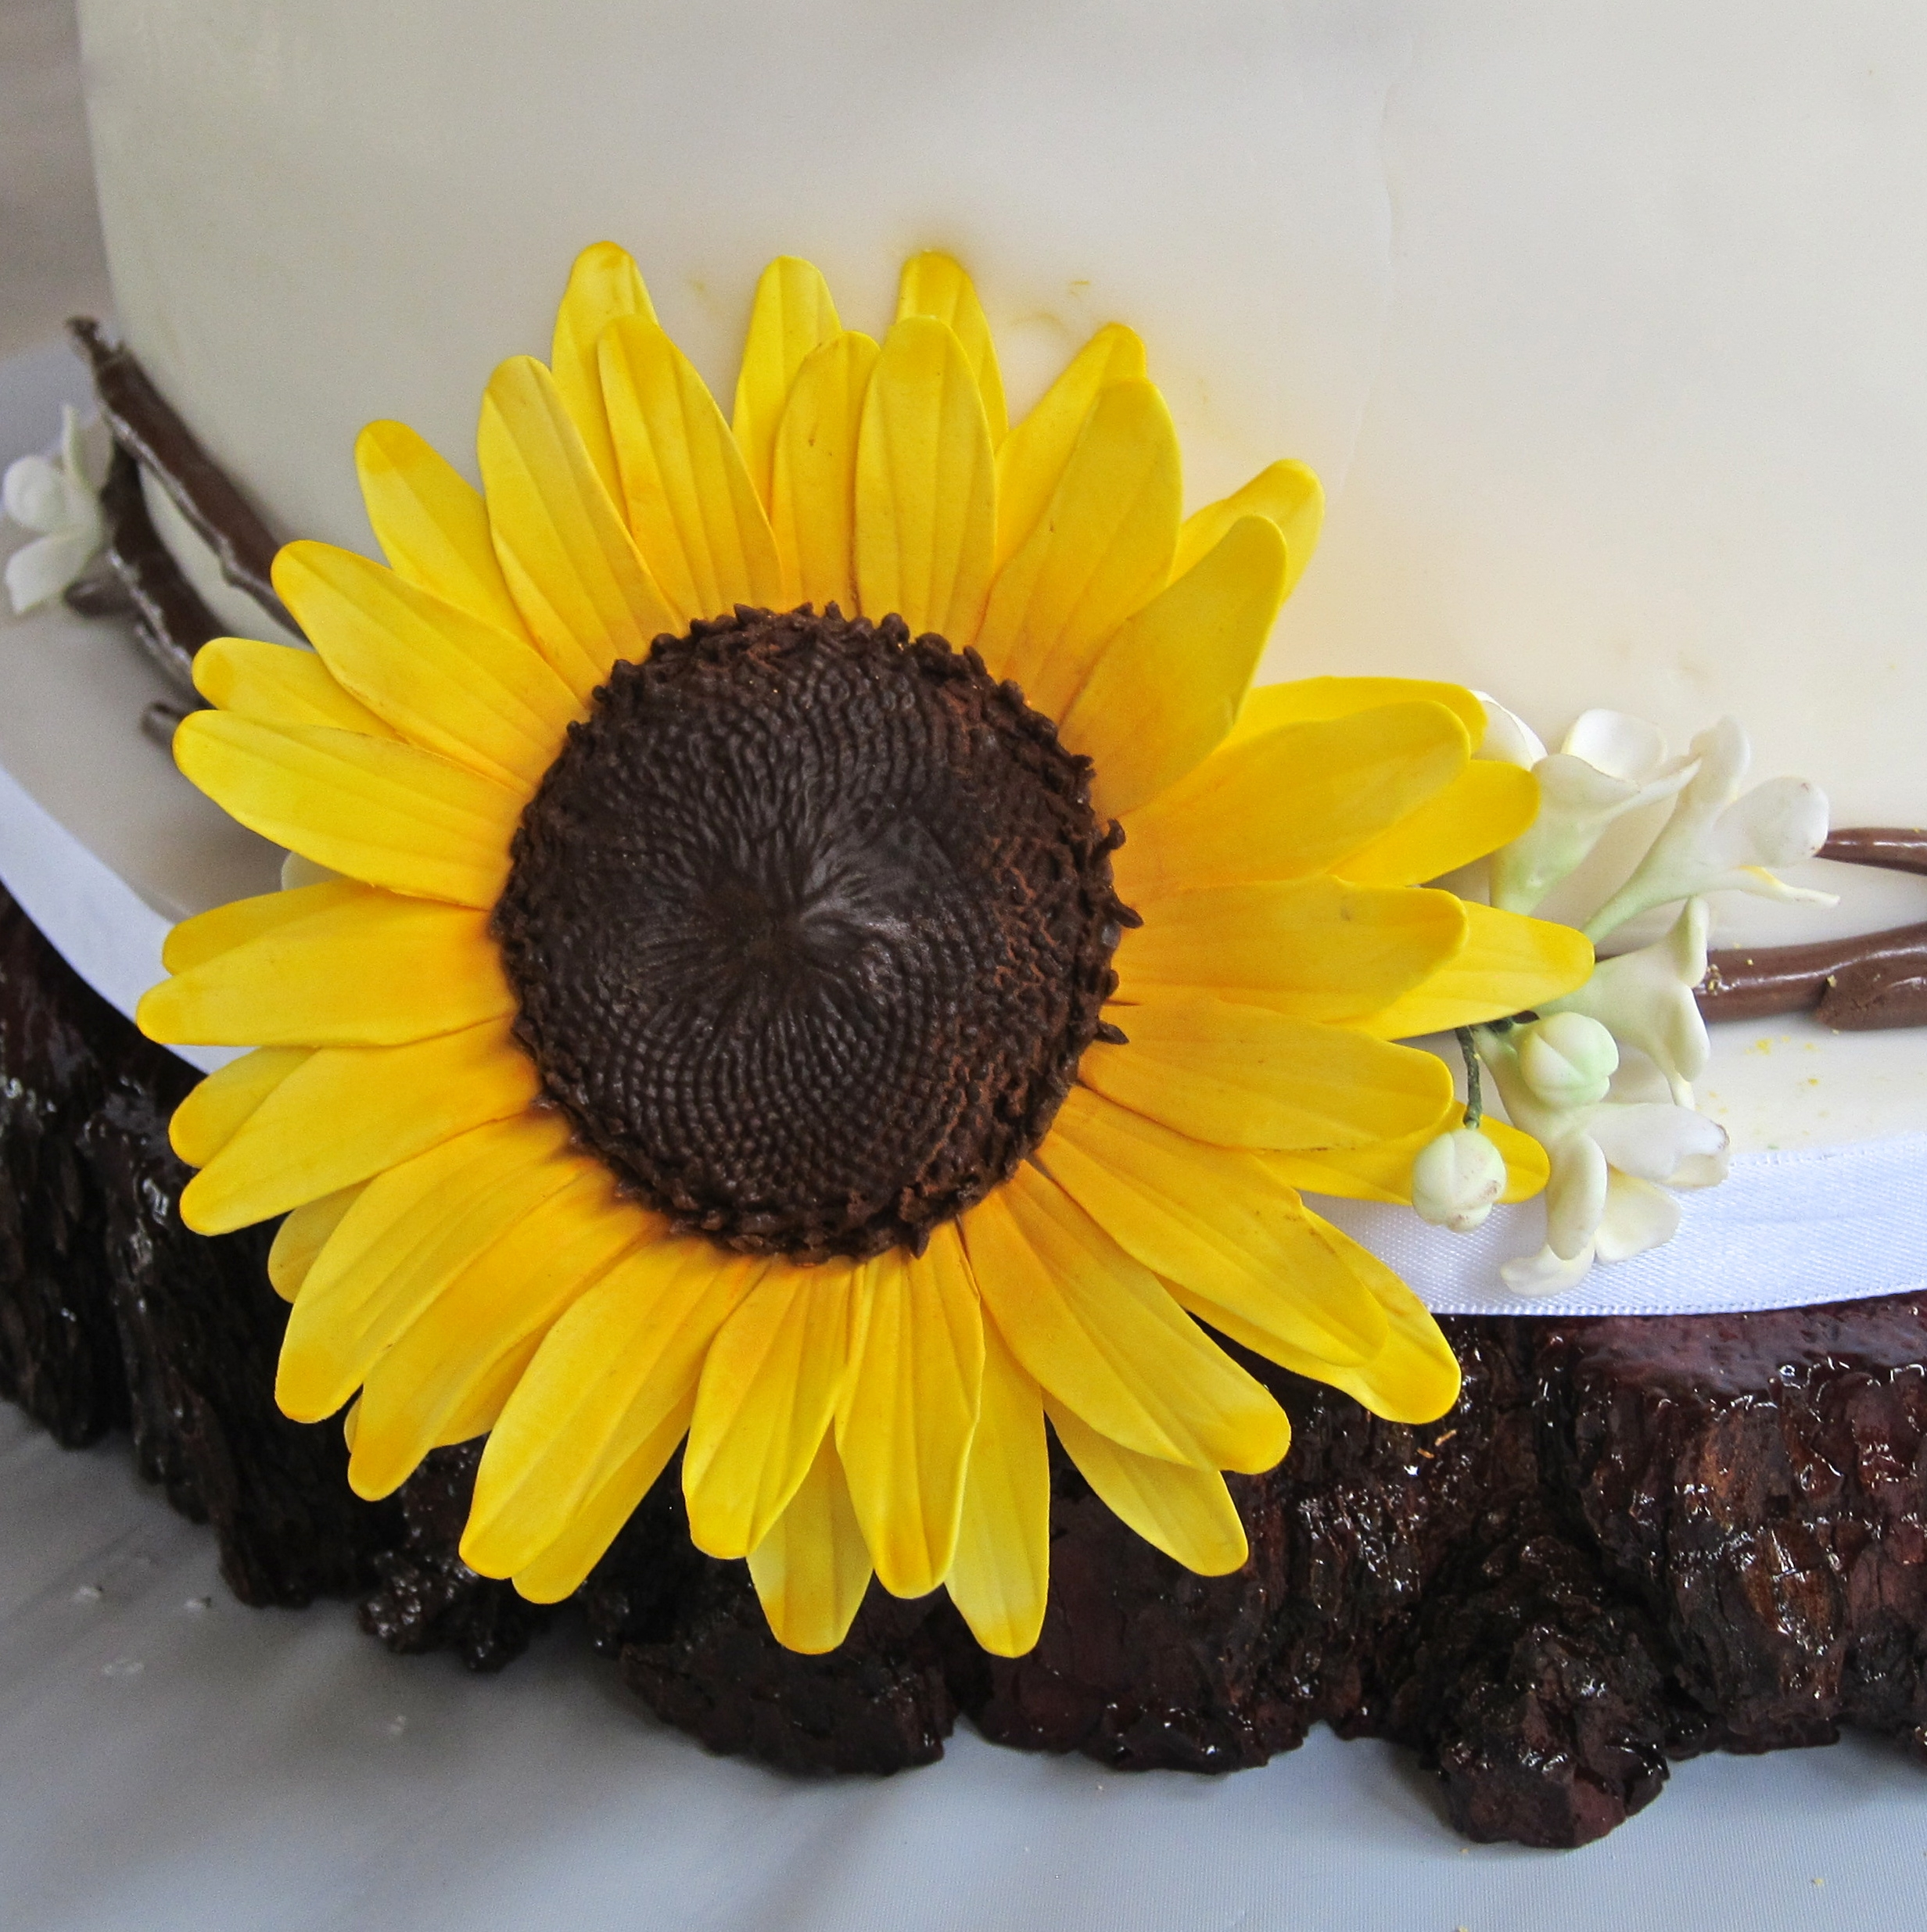 Modern Rustic Wedding Cake For An Outdoor Wedding 4 Offset Tiers ...